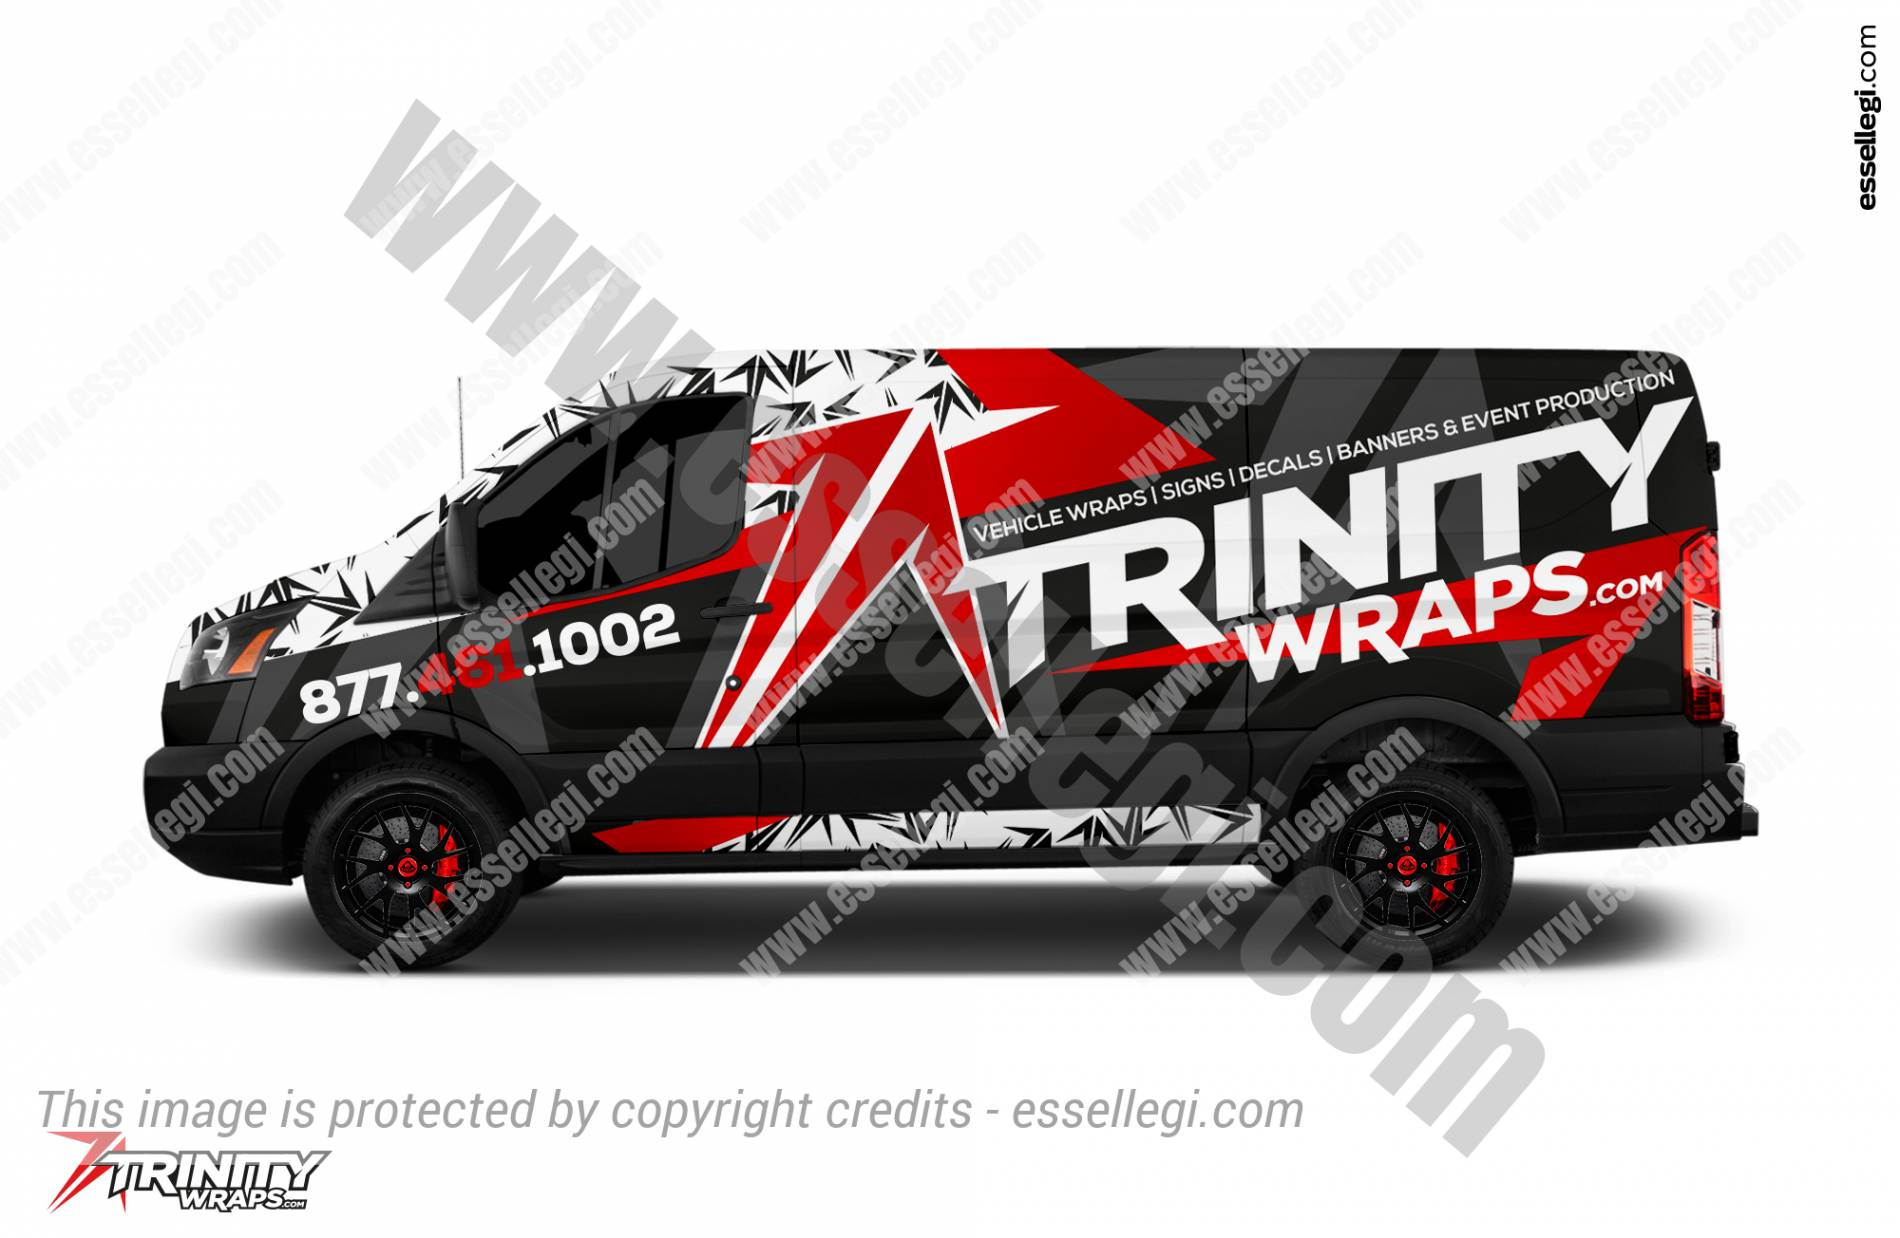 Nissan Nv200 Vinyl Wraps Car Wrap Solutions Blog New Pics